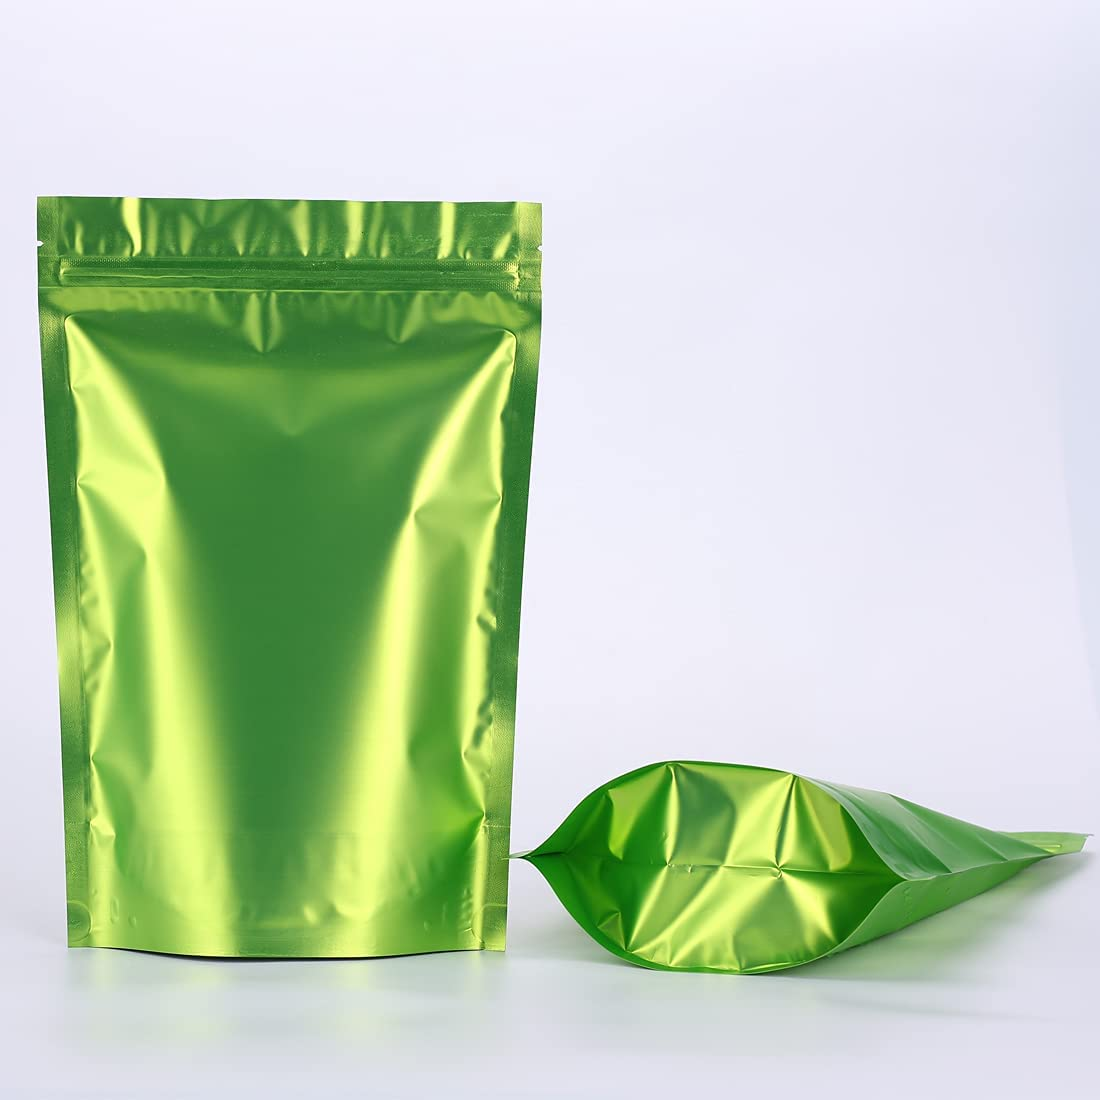 QIQIDAI 50Pcs Stand Up Mylar Food Storage Aluminum Foil Bags ,Foil Bags with Label sticker Packing Zipper Lock Resealable